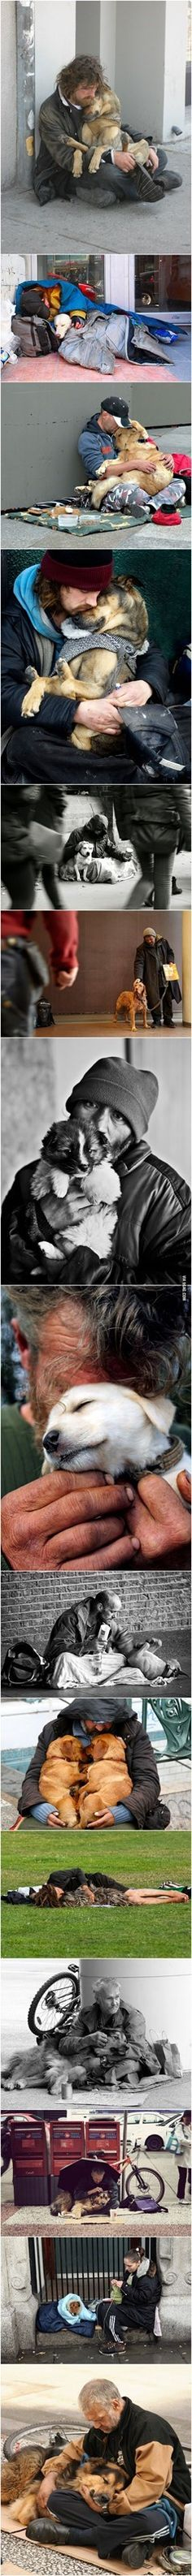 Human kindness.  No matter how hard life is, your pets and family come first, and give meaning to life, itself. These photos moved me, immensely.